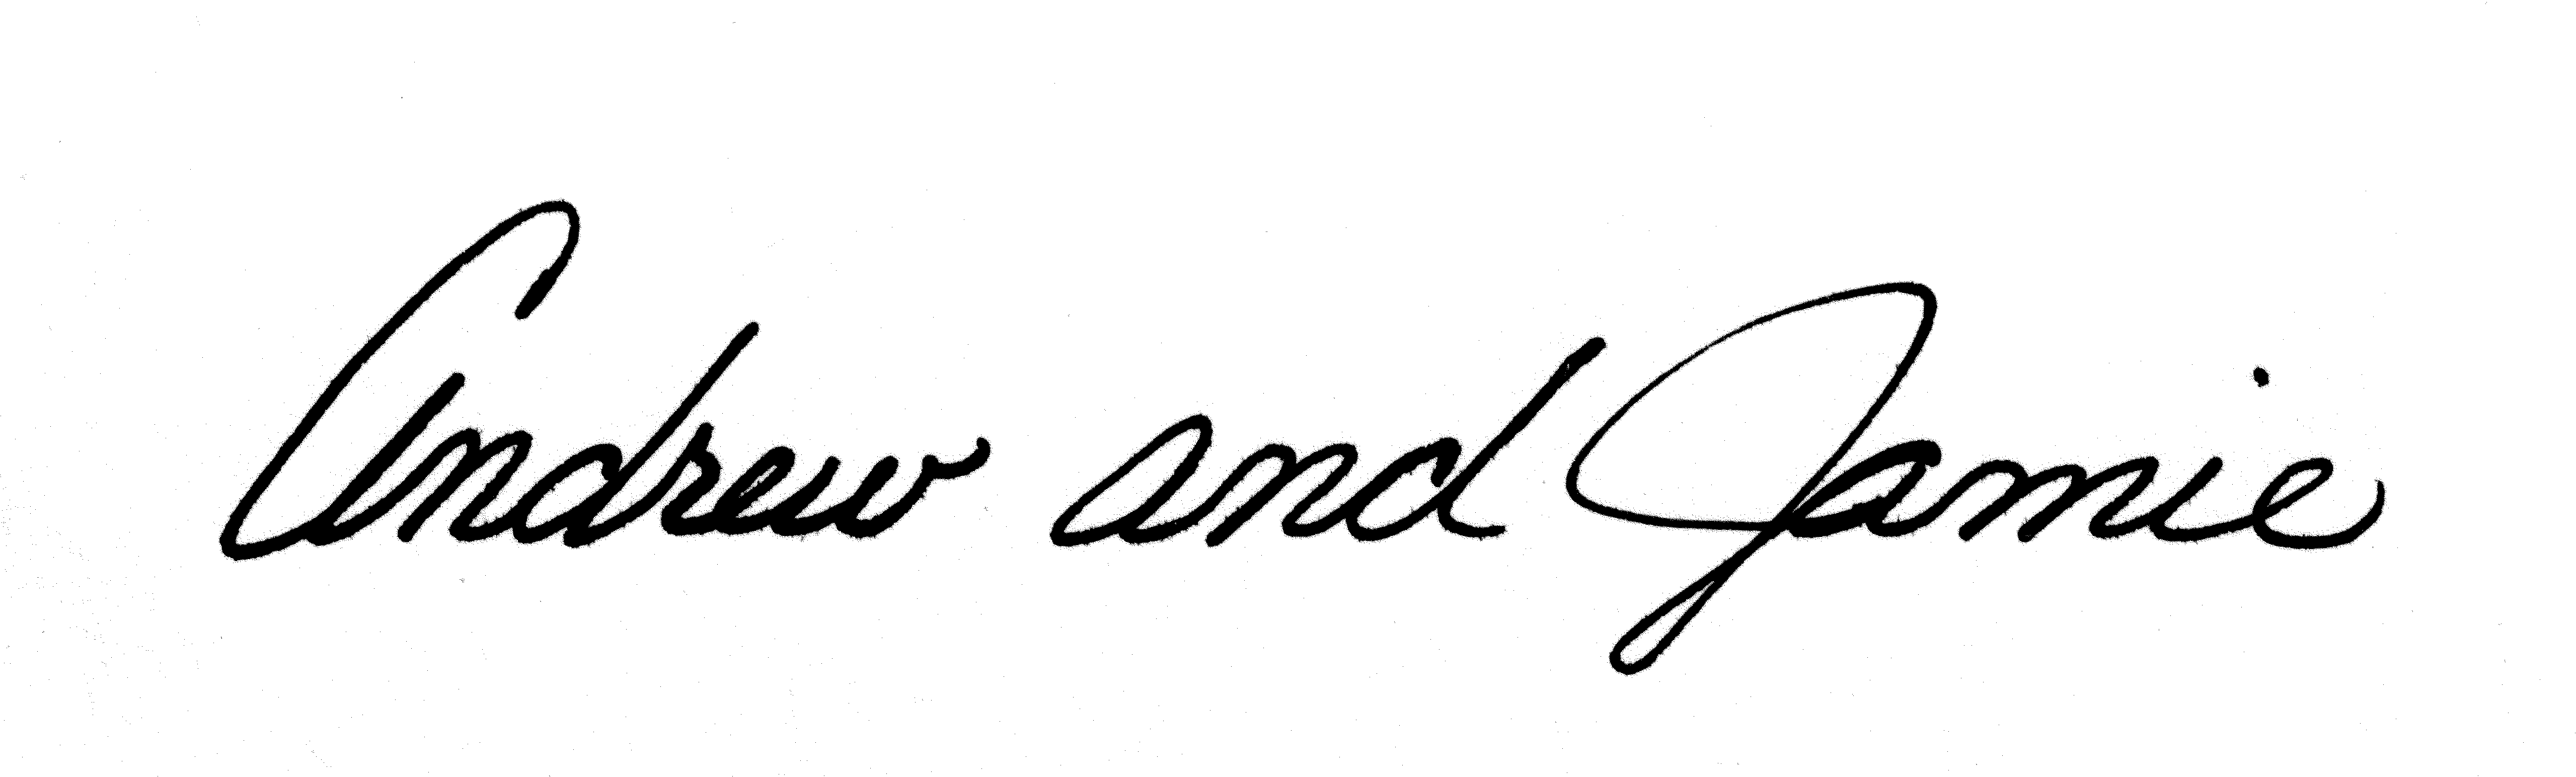 Andrew and Jamie Wommack's signature